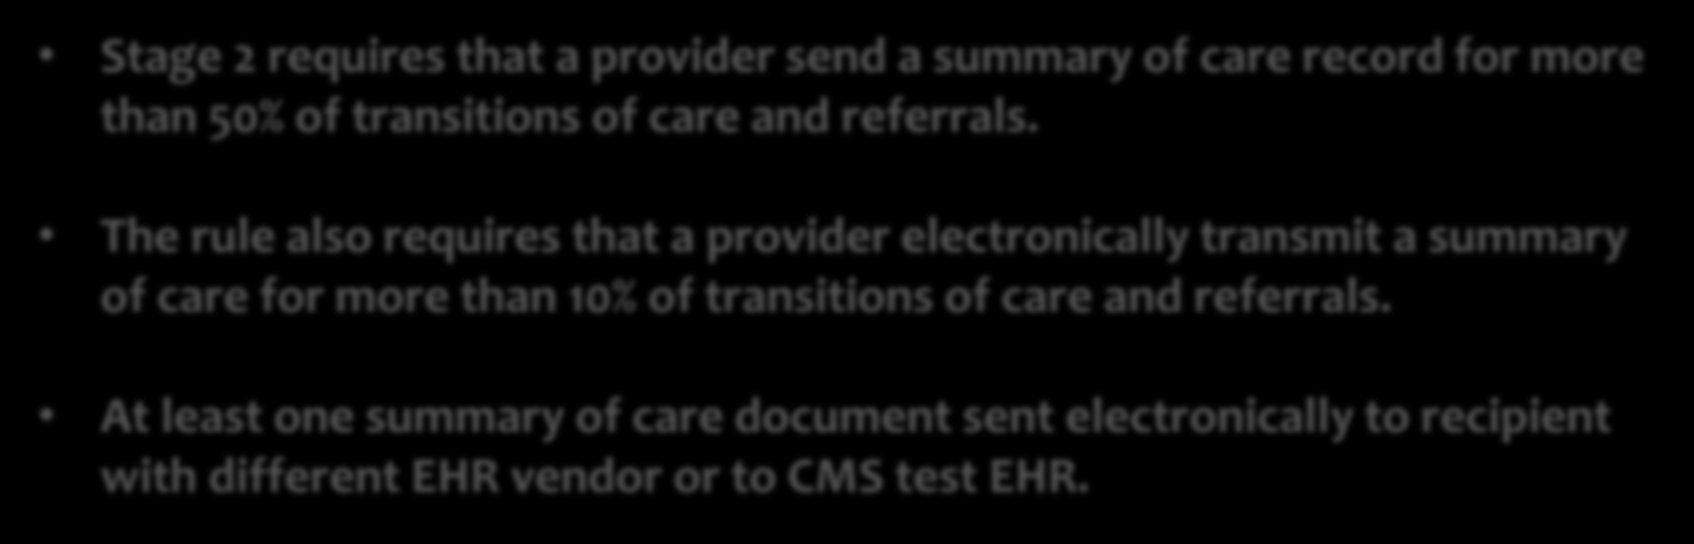 Closer Look at Stage 2: Electronic Exchange Stage 2 focuses on actual use cases of electronic information exchange: Stage 2 requires that a provider send a summary of care record for more than 50% of